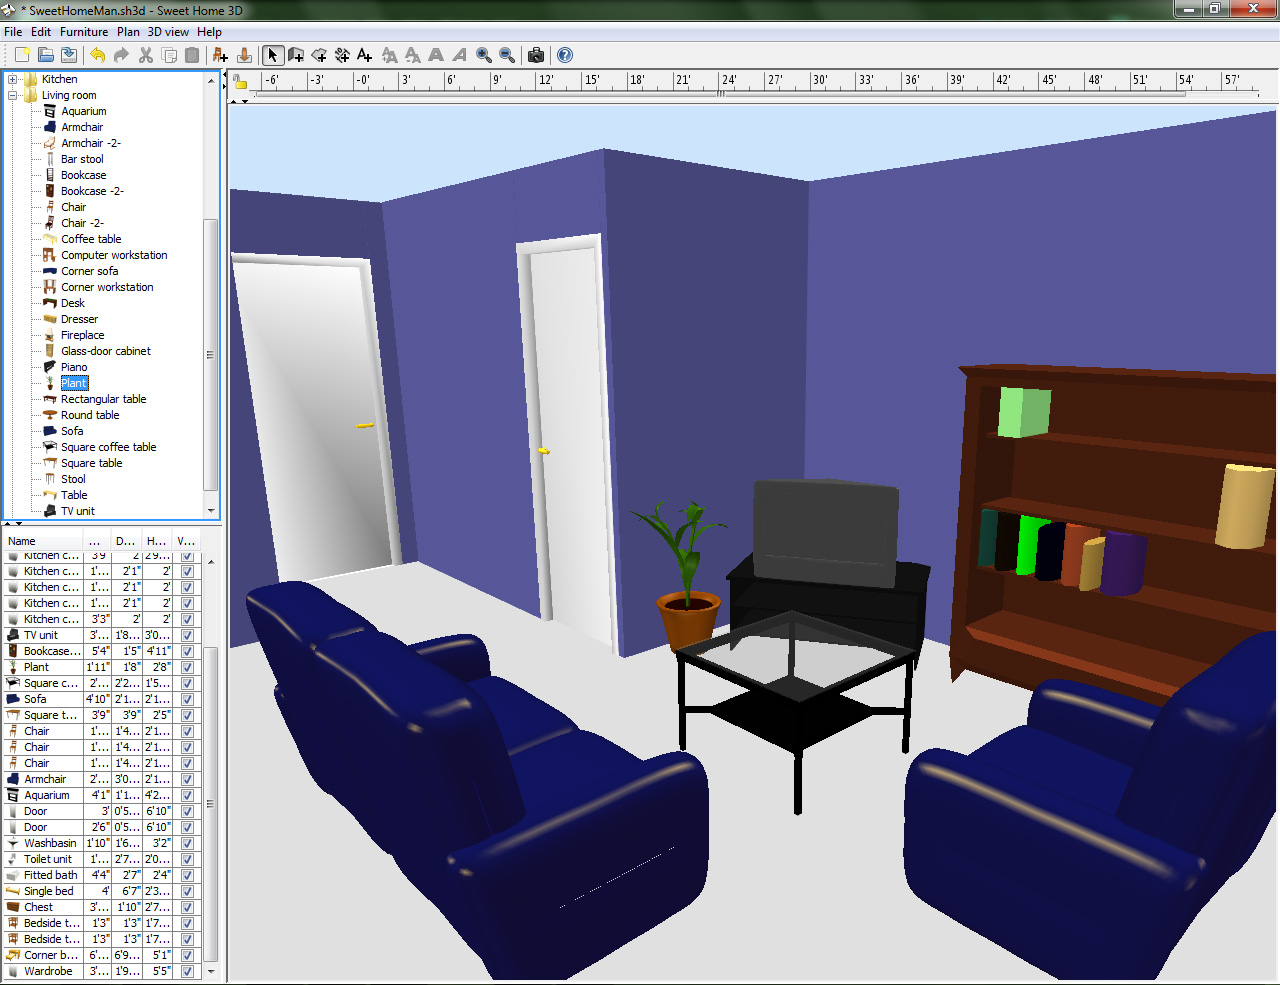 House Interior Design Software: free interior design